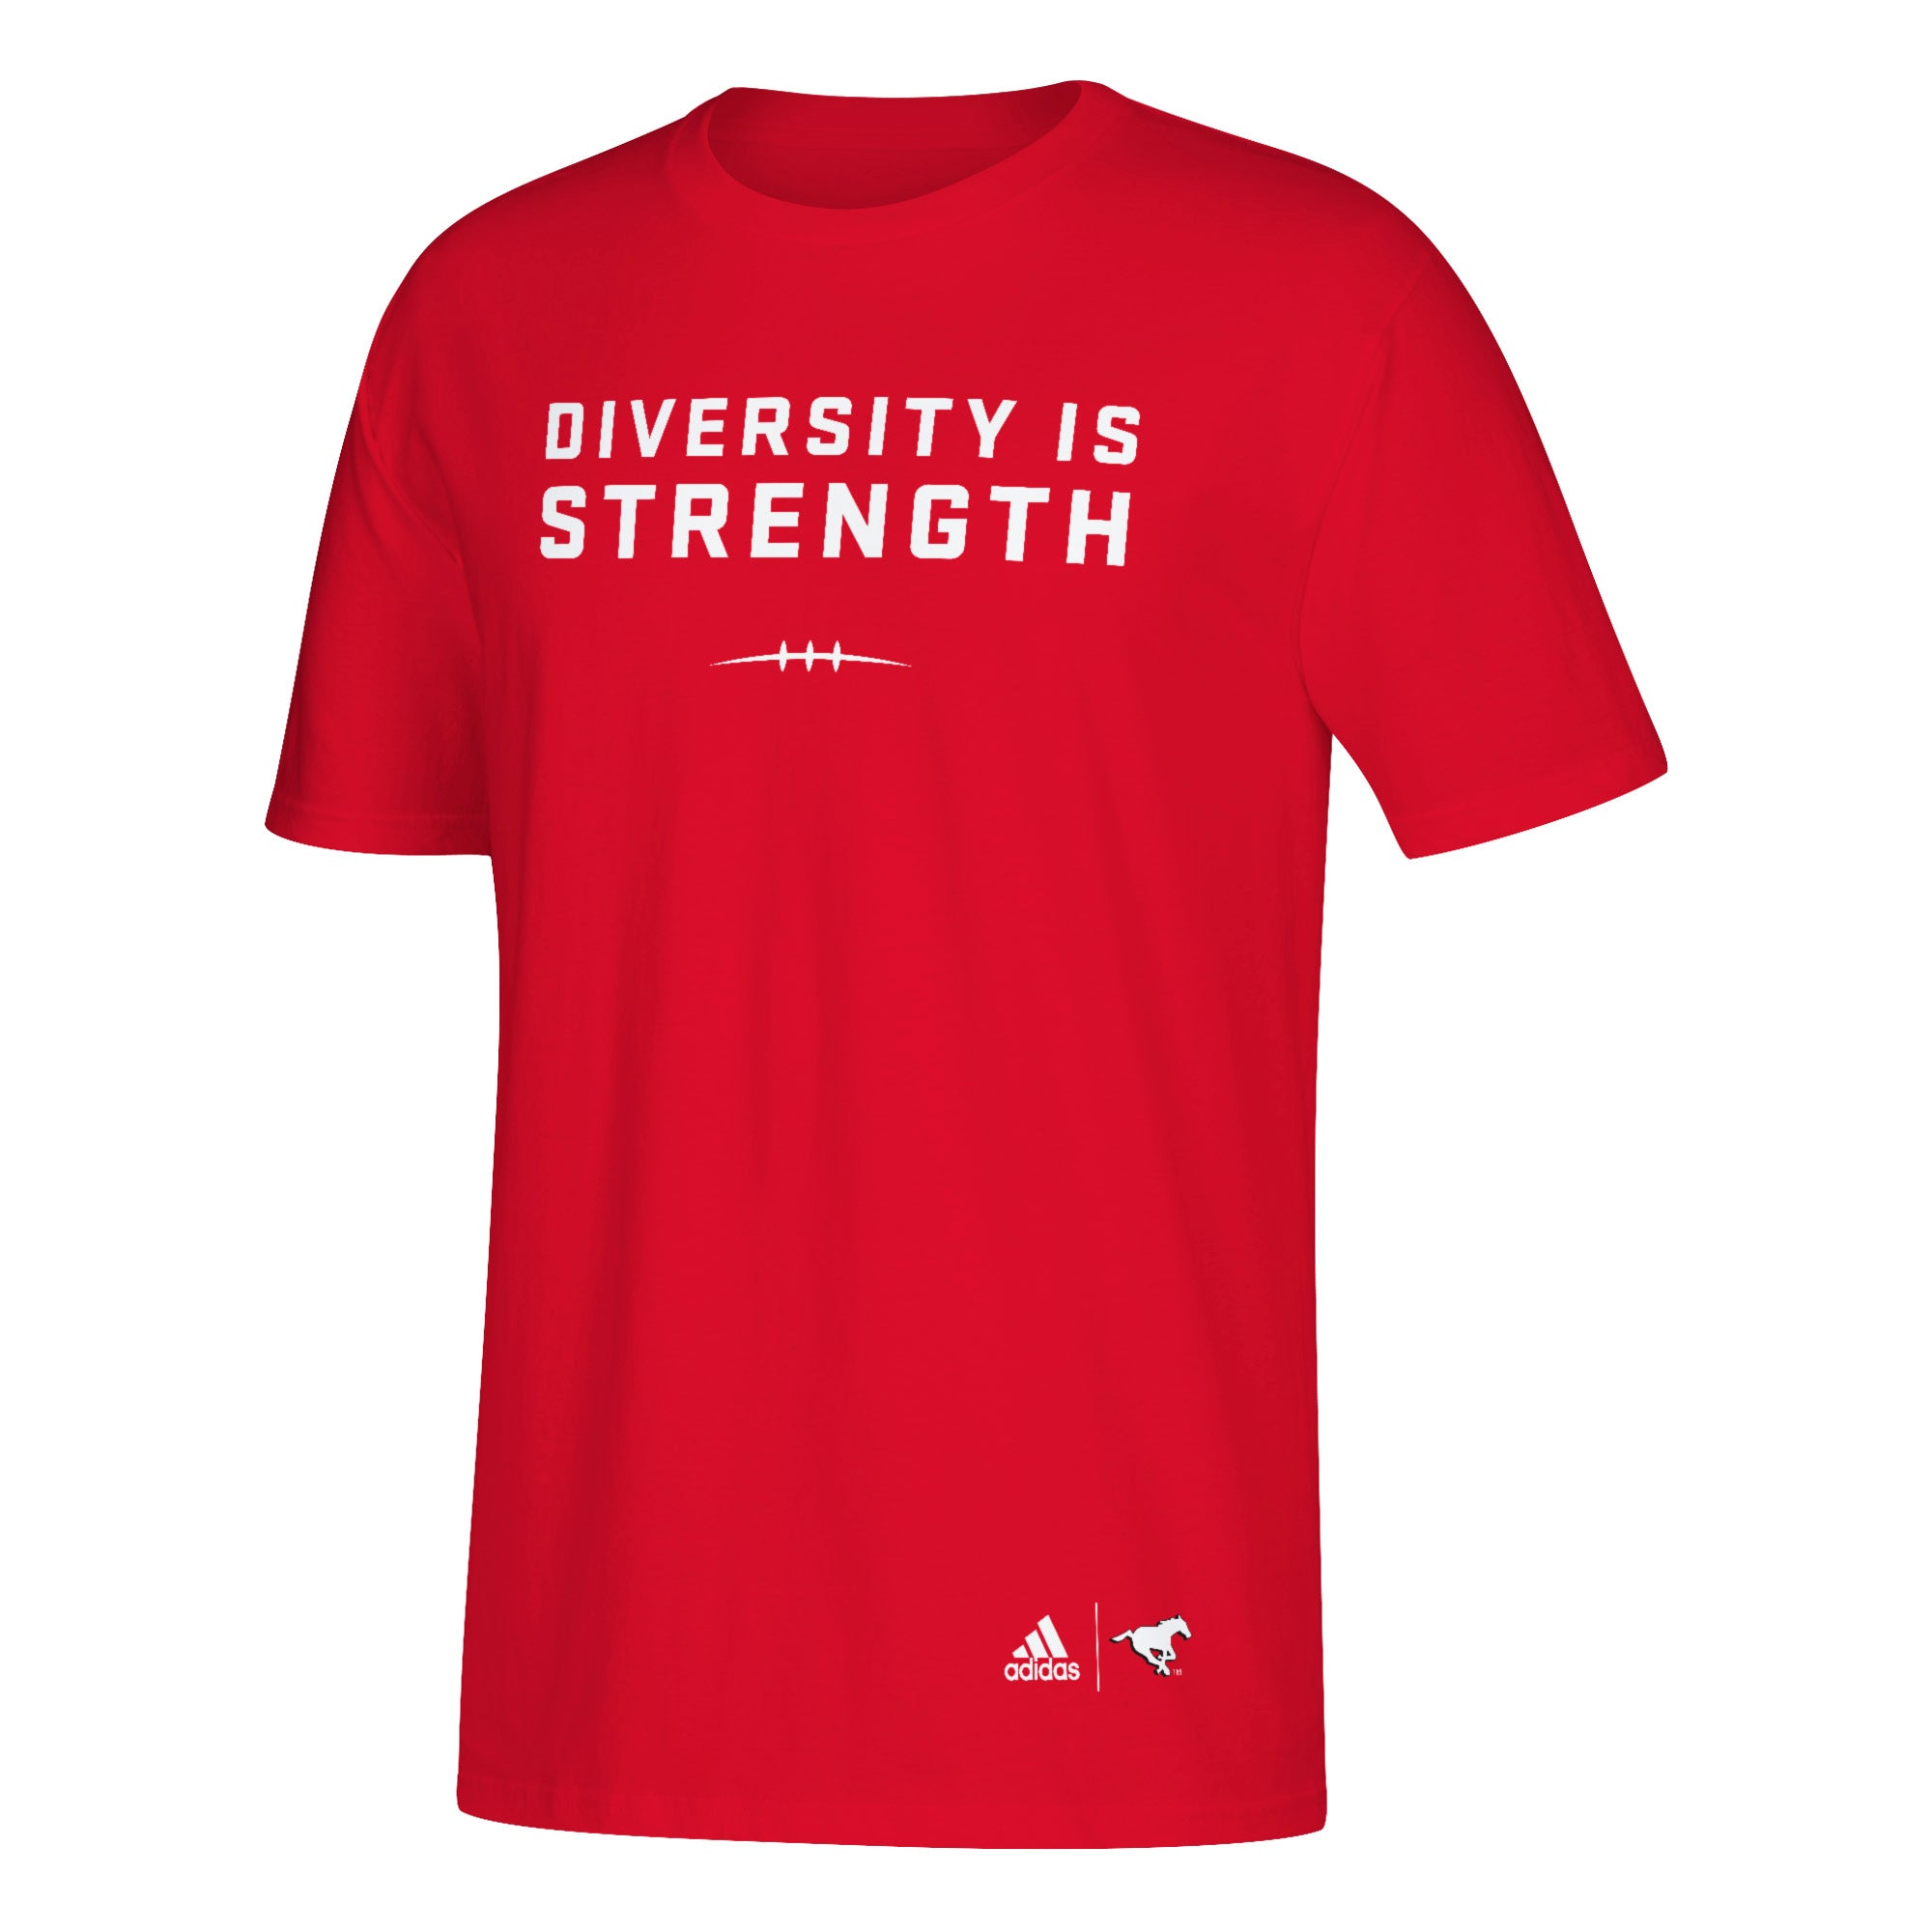 Calgary Stampeders Diversity is Strength Shirt